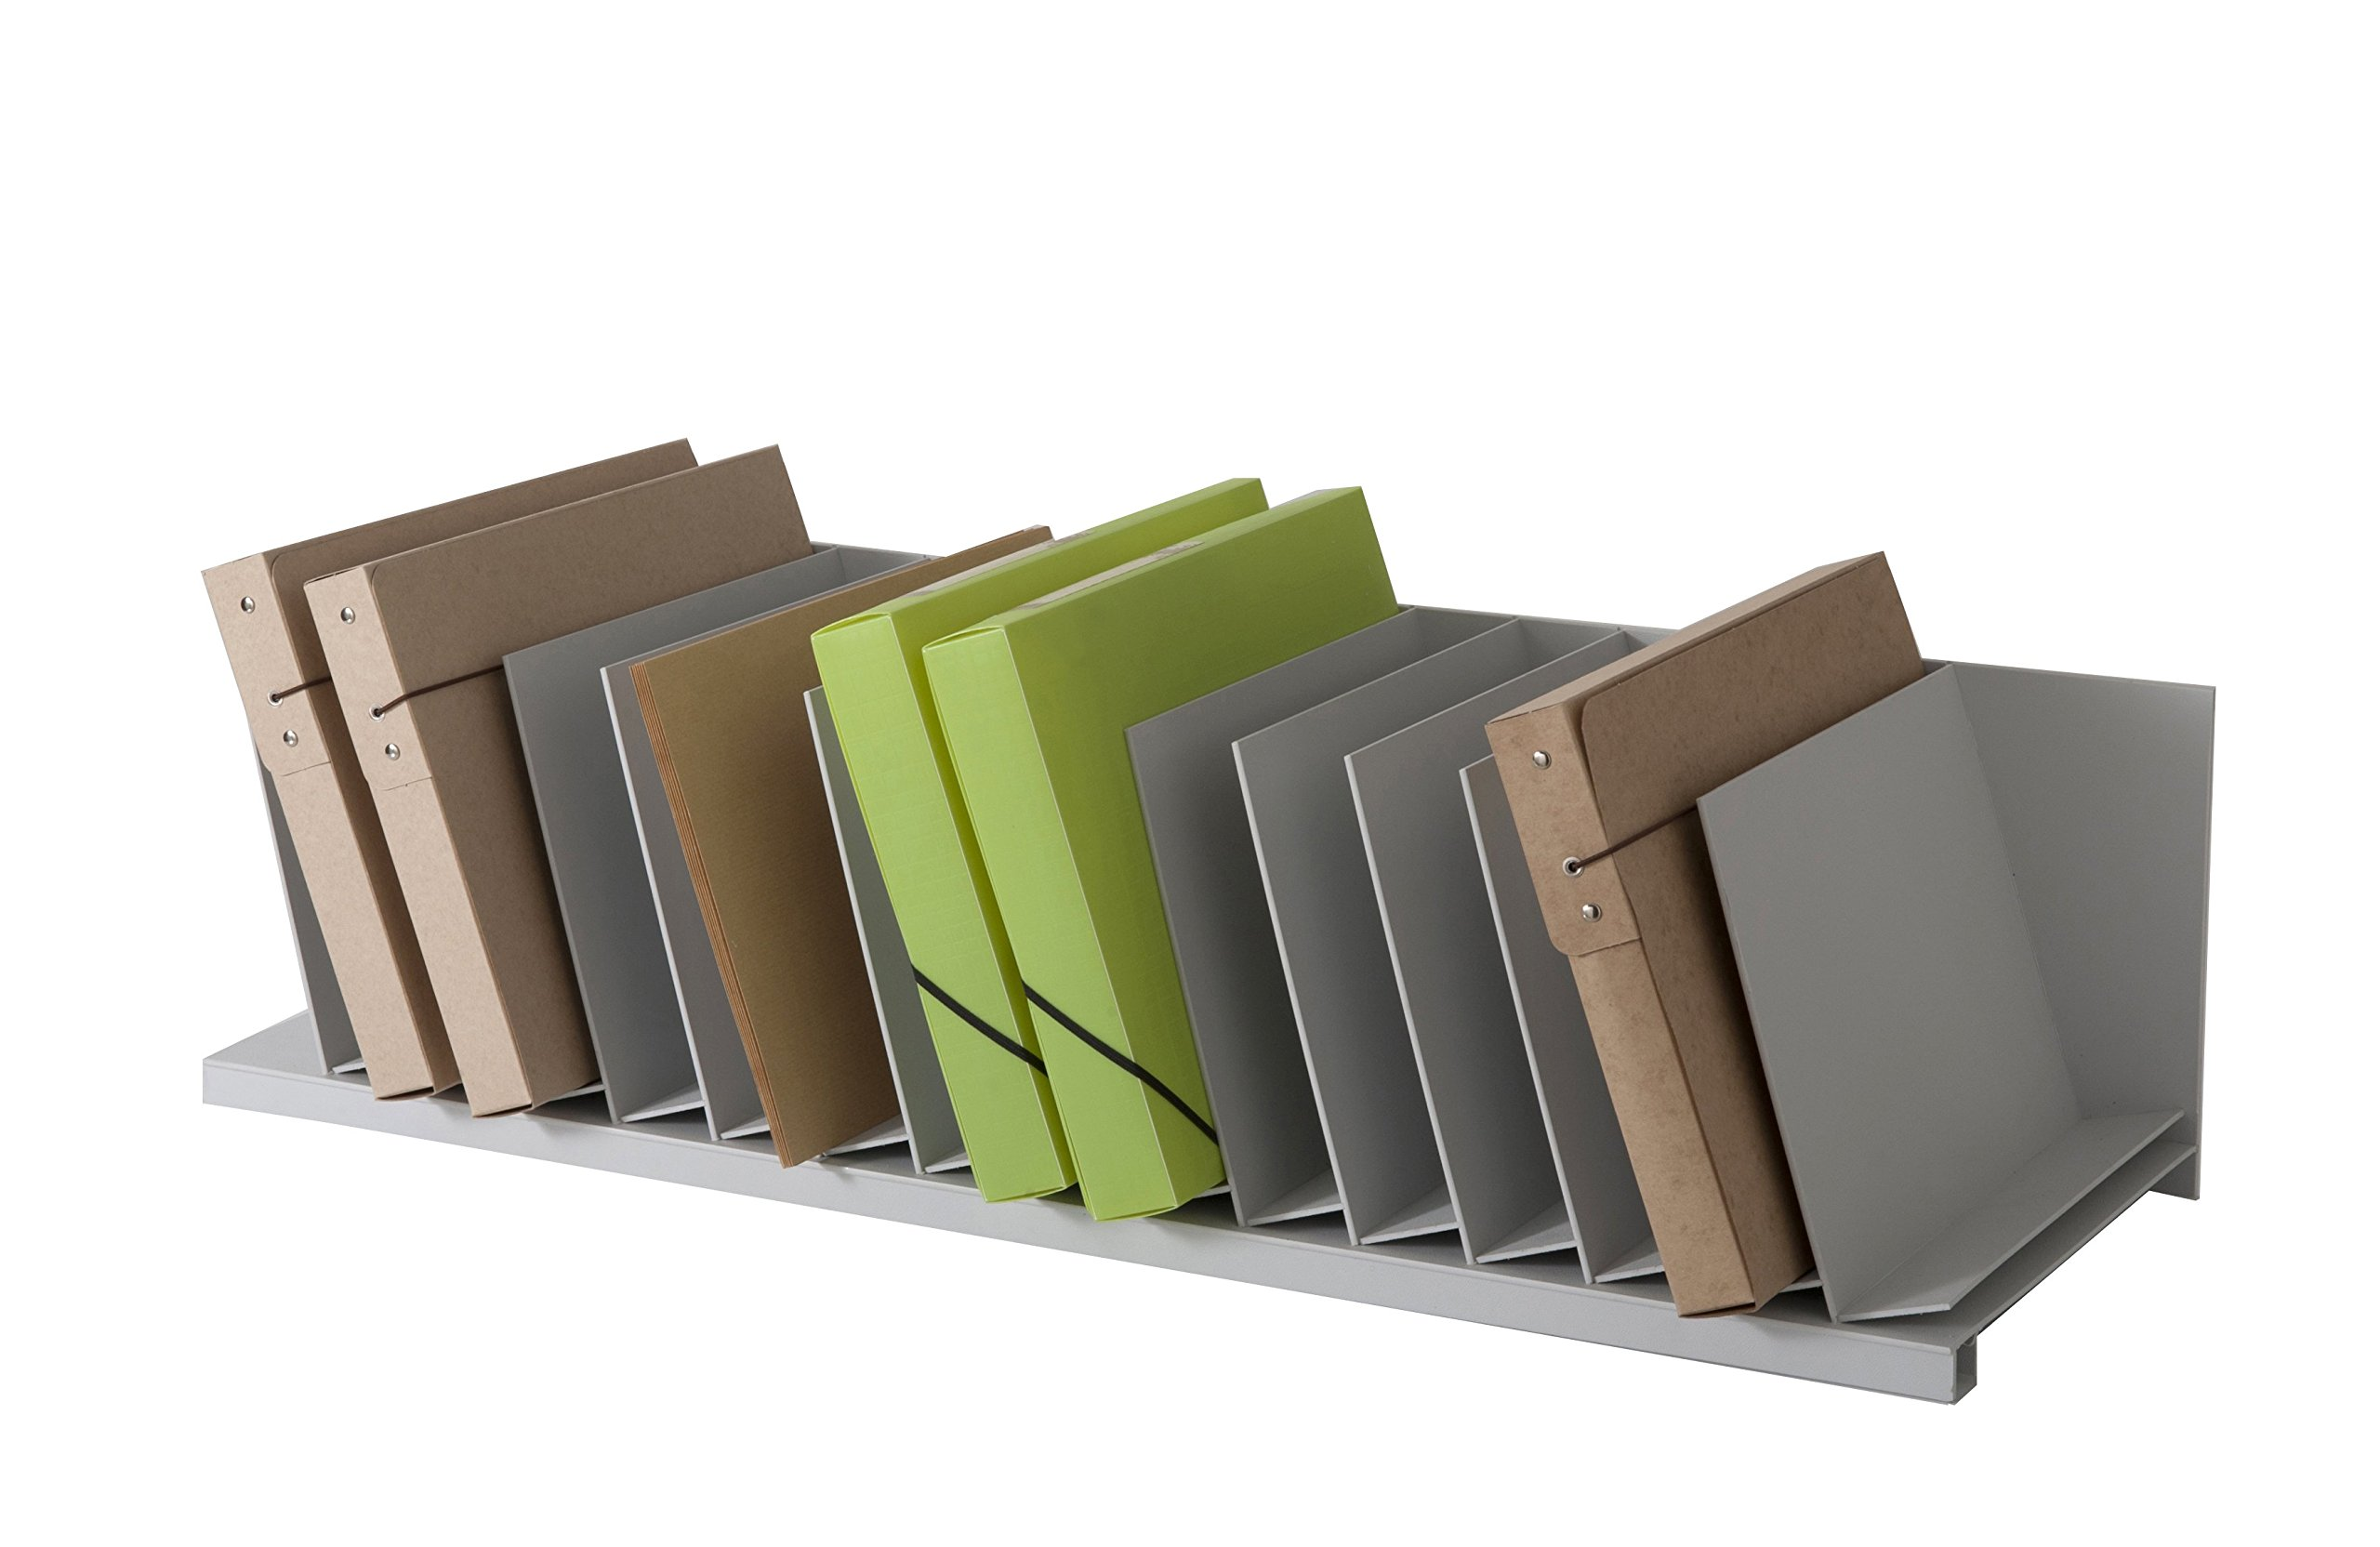 PaperFlow 33-3/4-Inch Easy Office Inclined Vertical Desktop Organizer, 15 Compartments, Grey (4940.02)